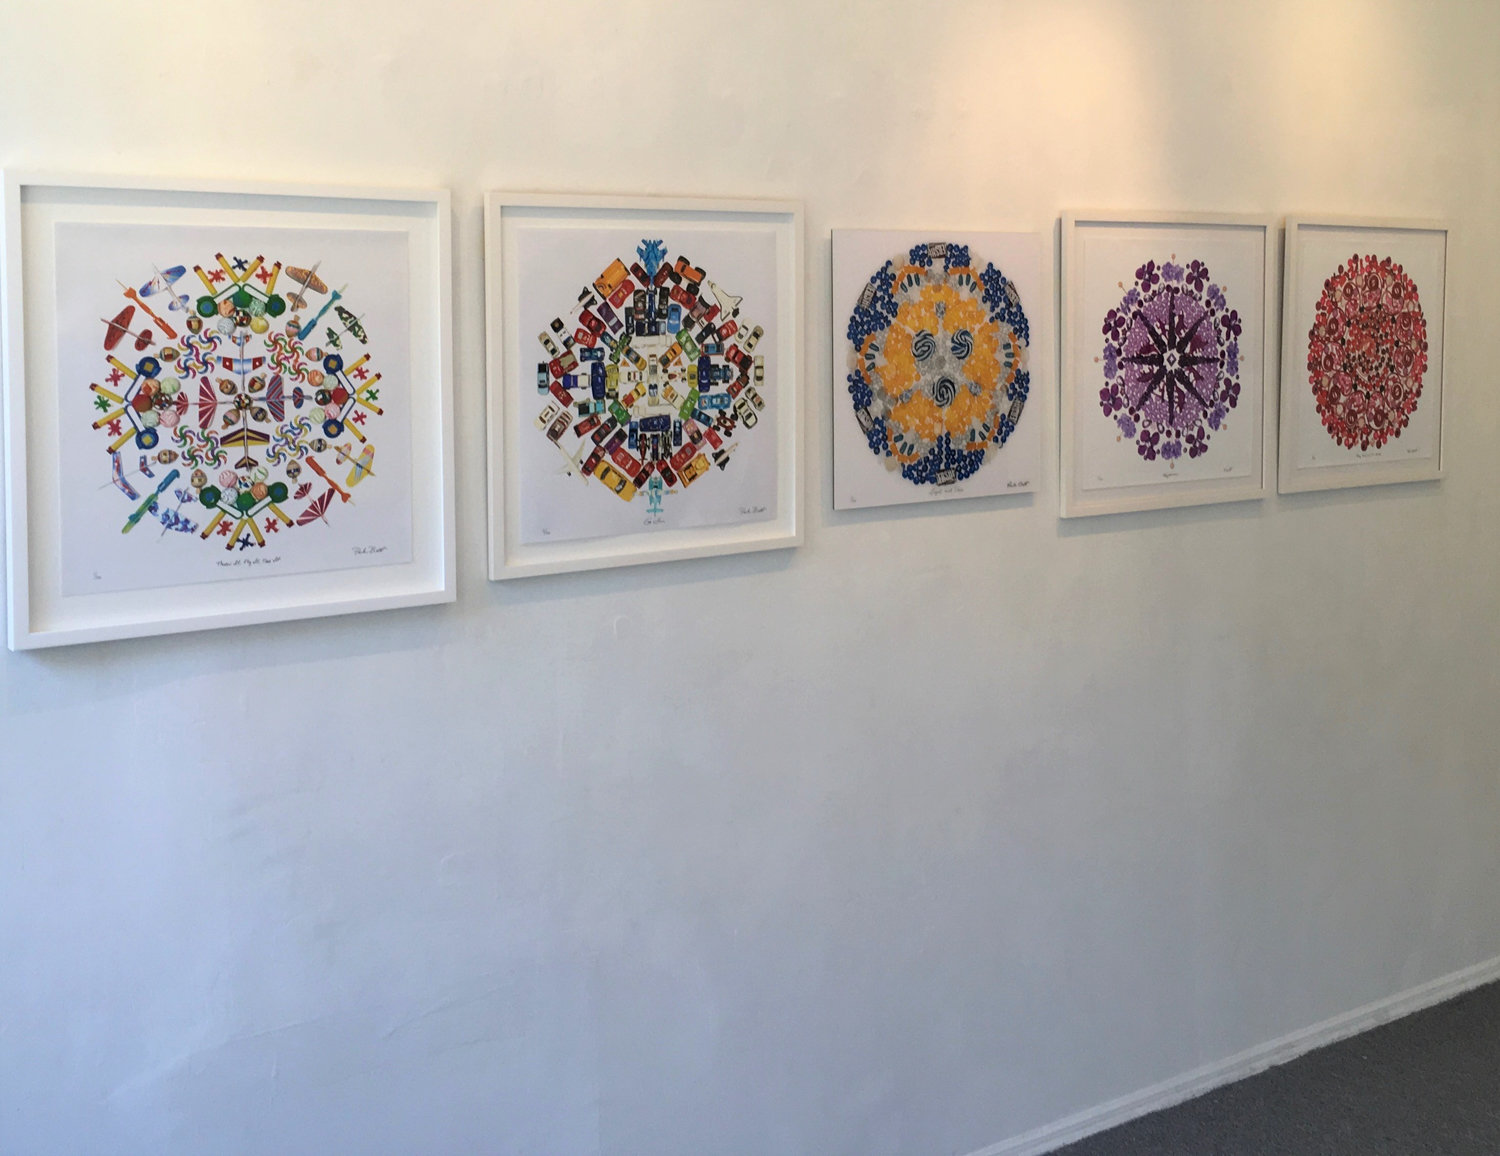 The group exhibition 'Picture This' at Elisa Contemporary Art brings together works by various artists, including Paula Brett's mandalas.